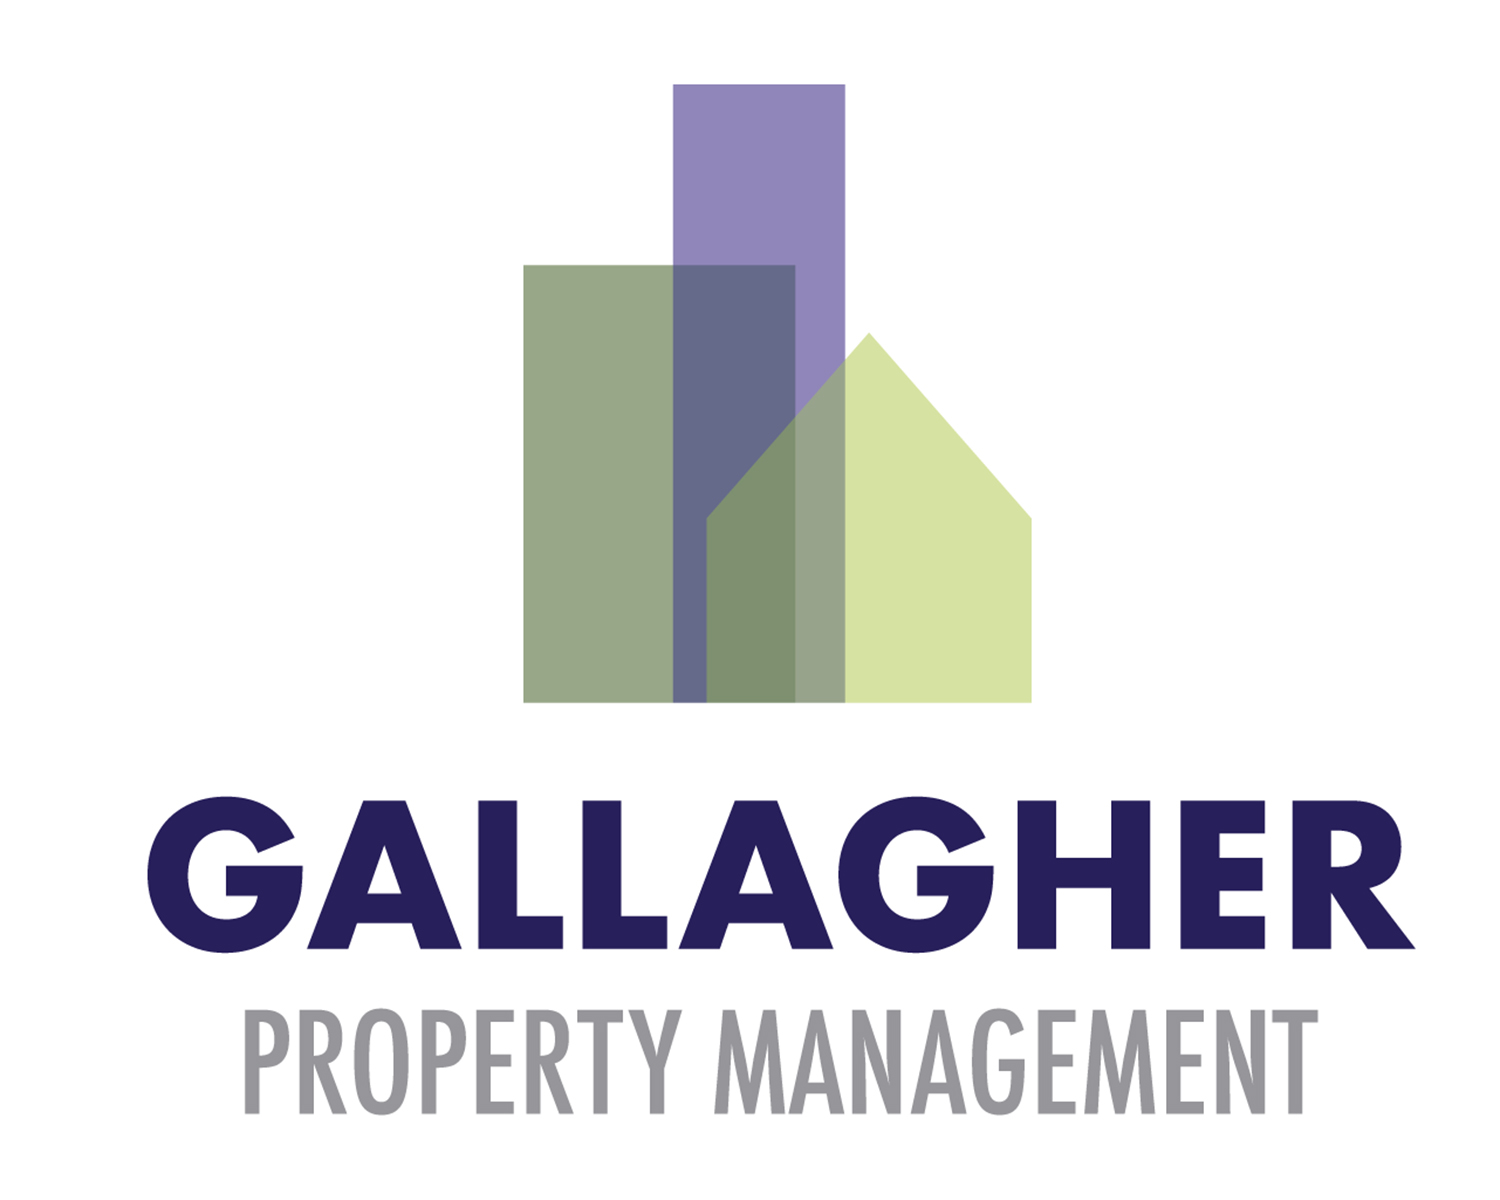 Gallagher Property Management